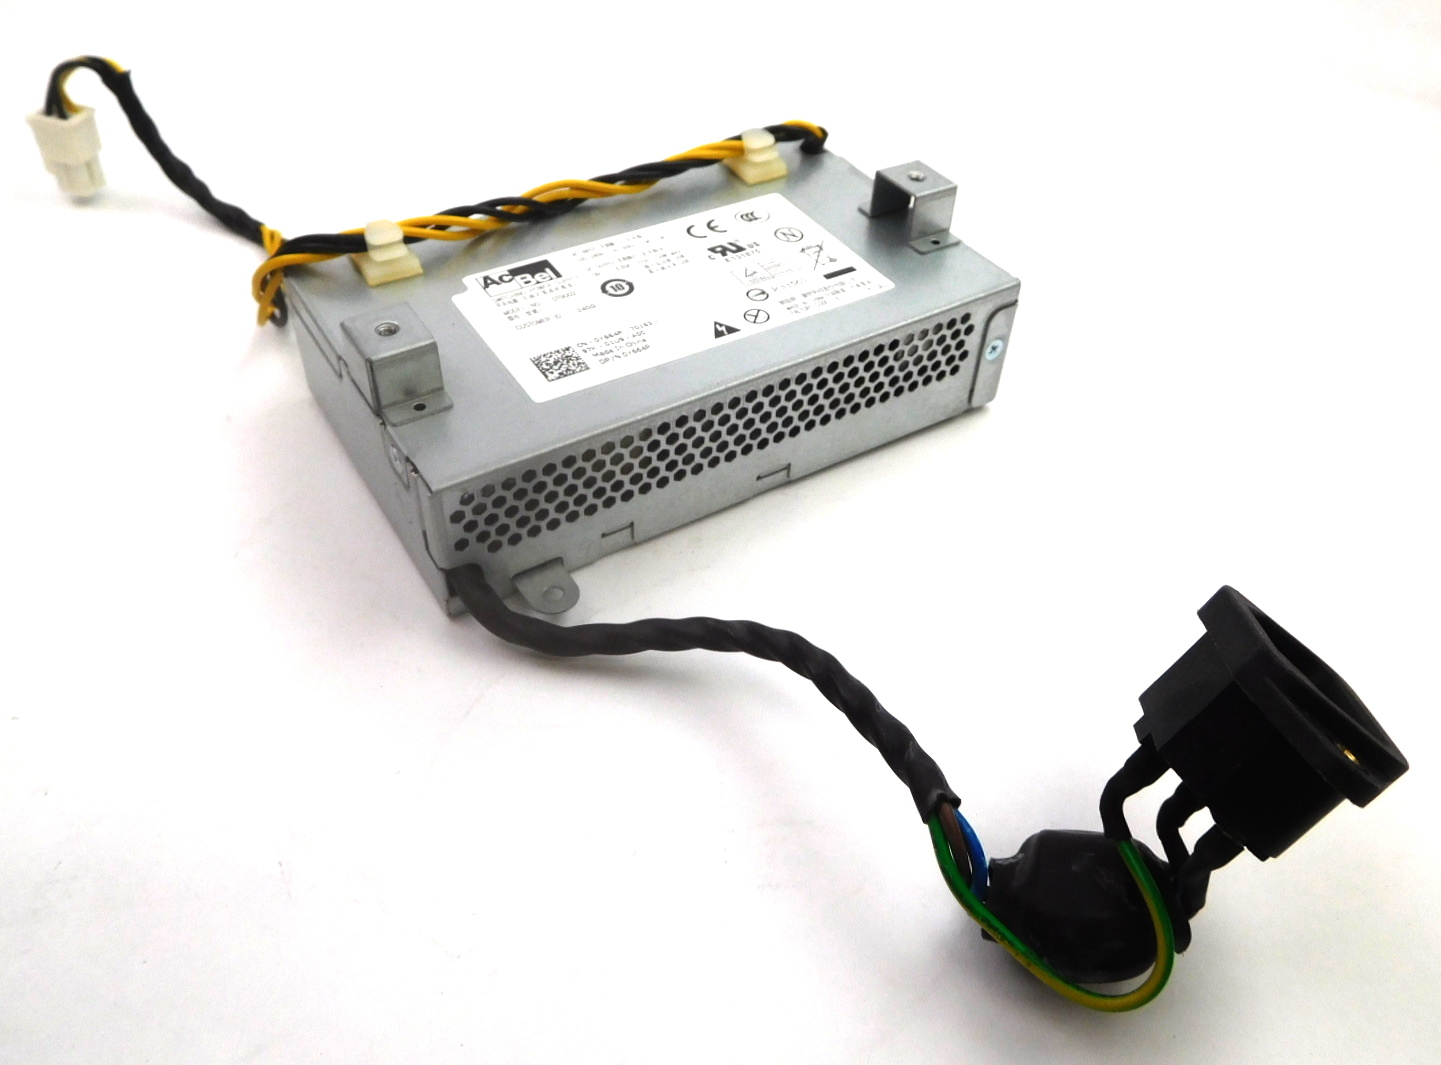 Y664P Dell Inspiron One AcBel 130W Power Supply Model 0T9002